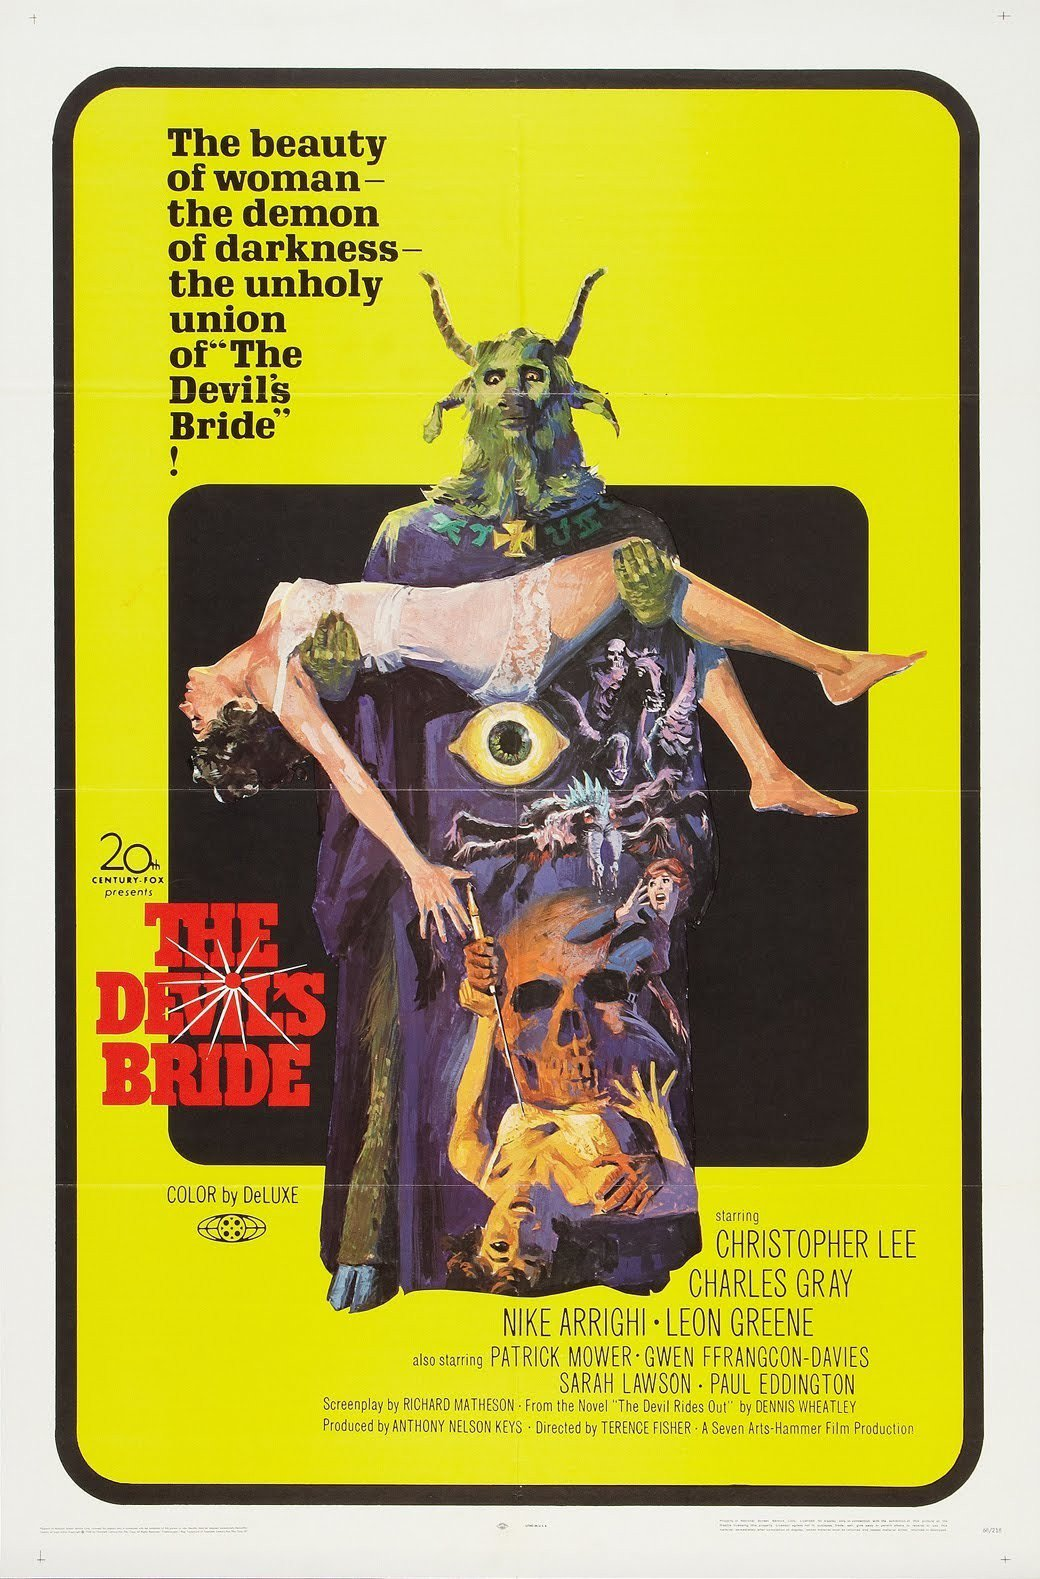 The Devil Rides Out (a.k.a The Devil's Bride 1968, Dir. Terence Fisher)